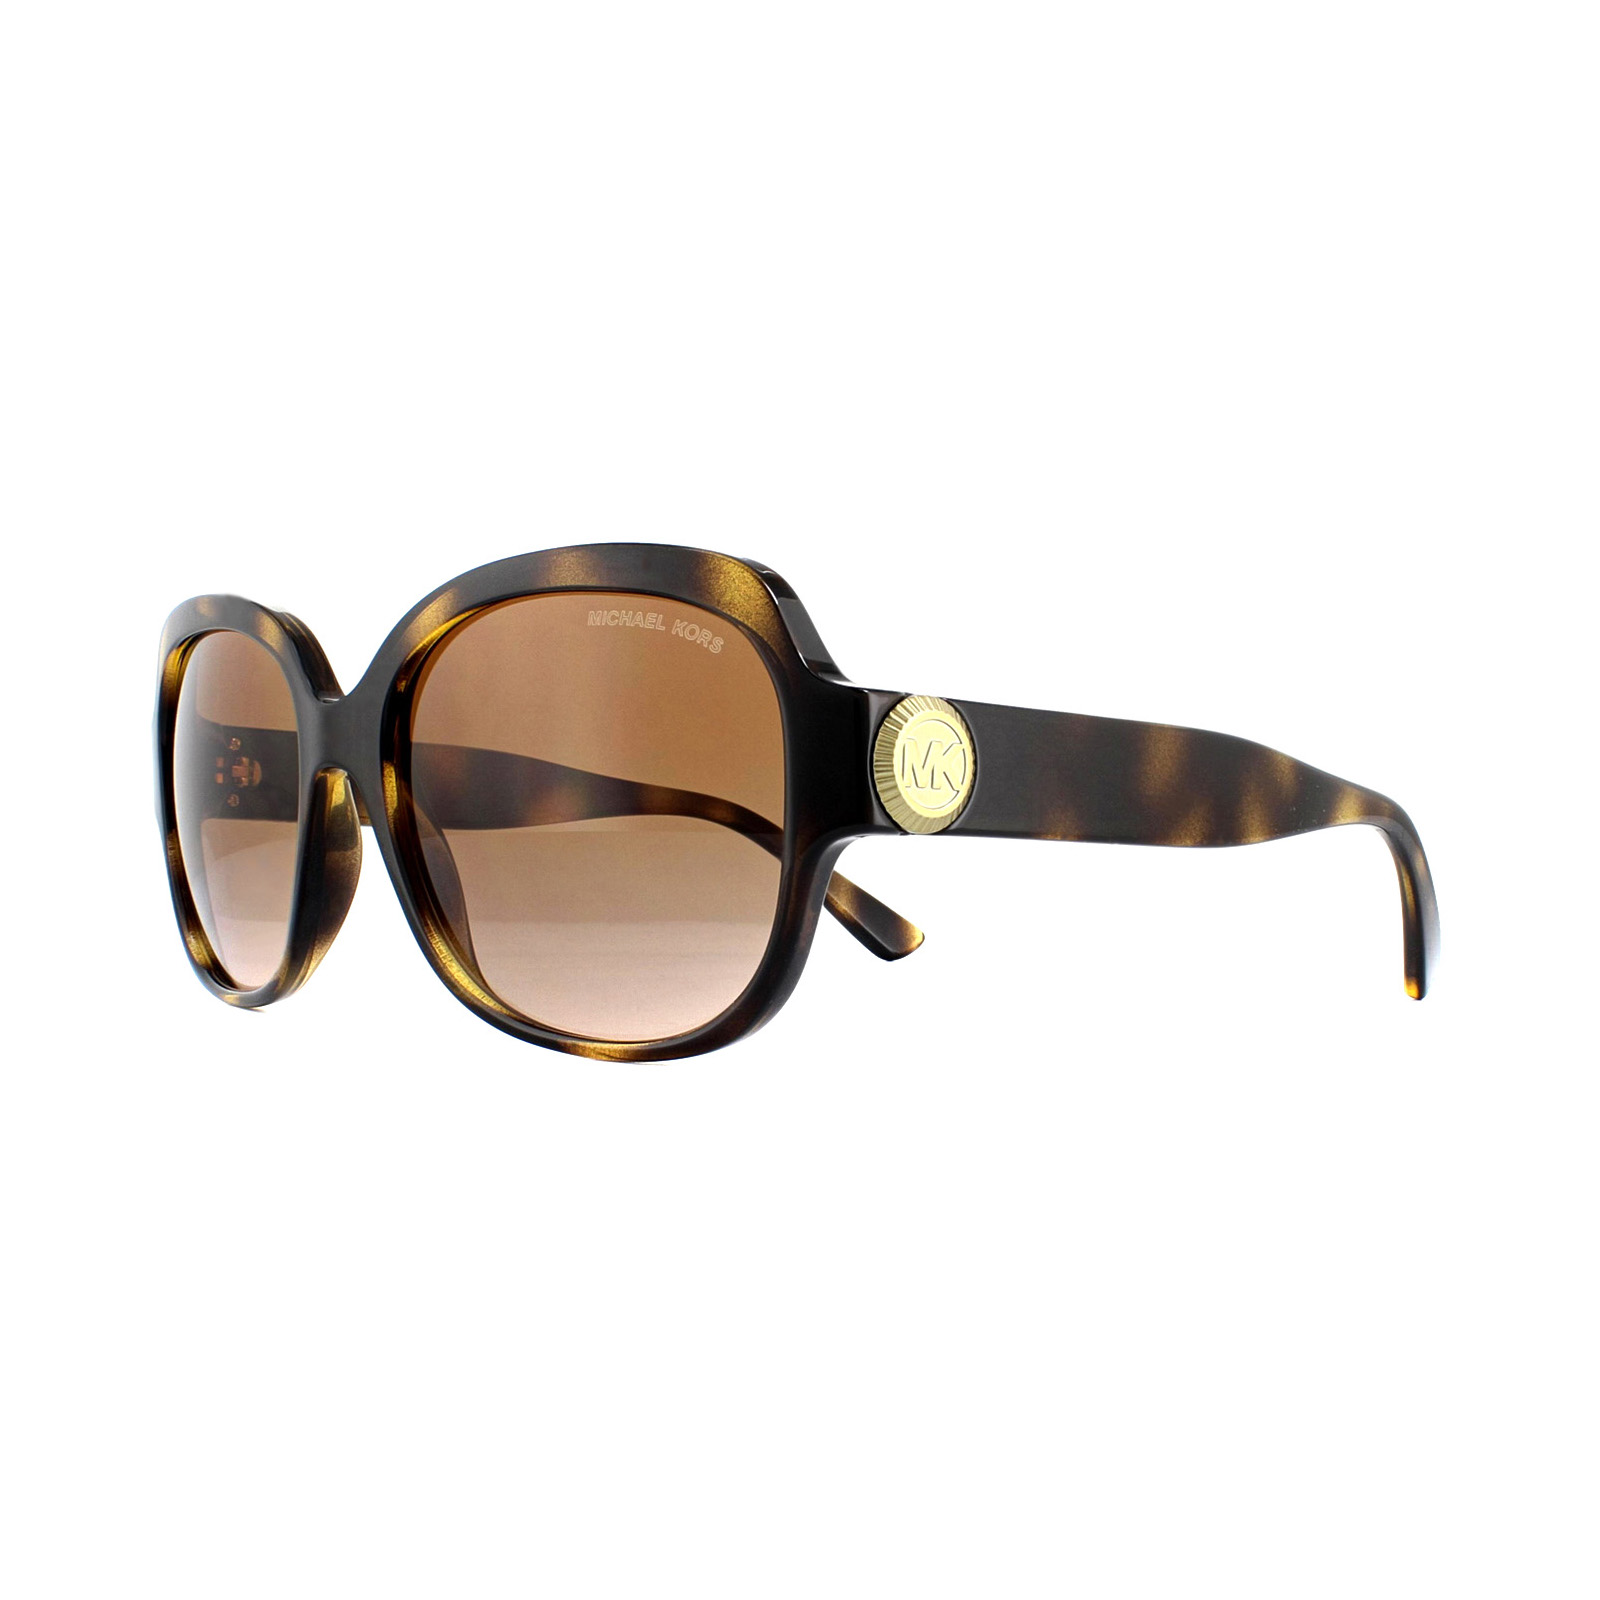 0f5e2c634d Cheap Michael Kors Suz MK 2055 Sunglasses - Discounted Sunglasses